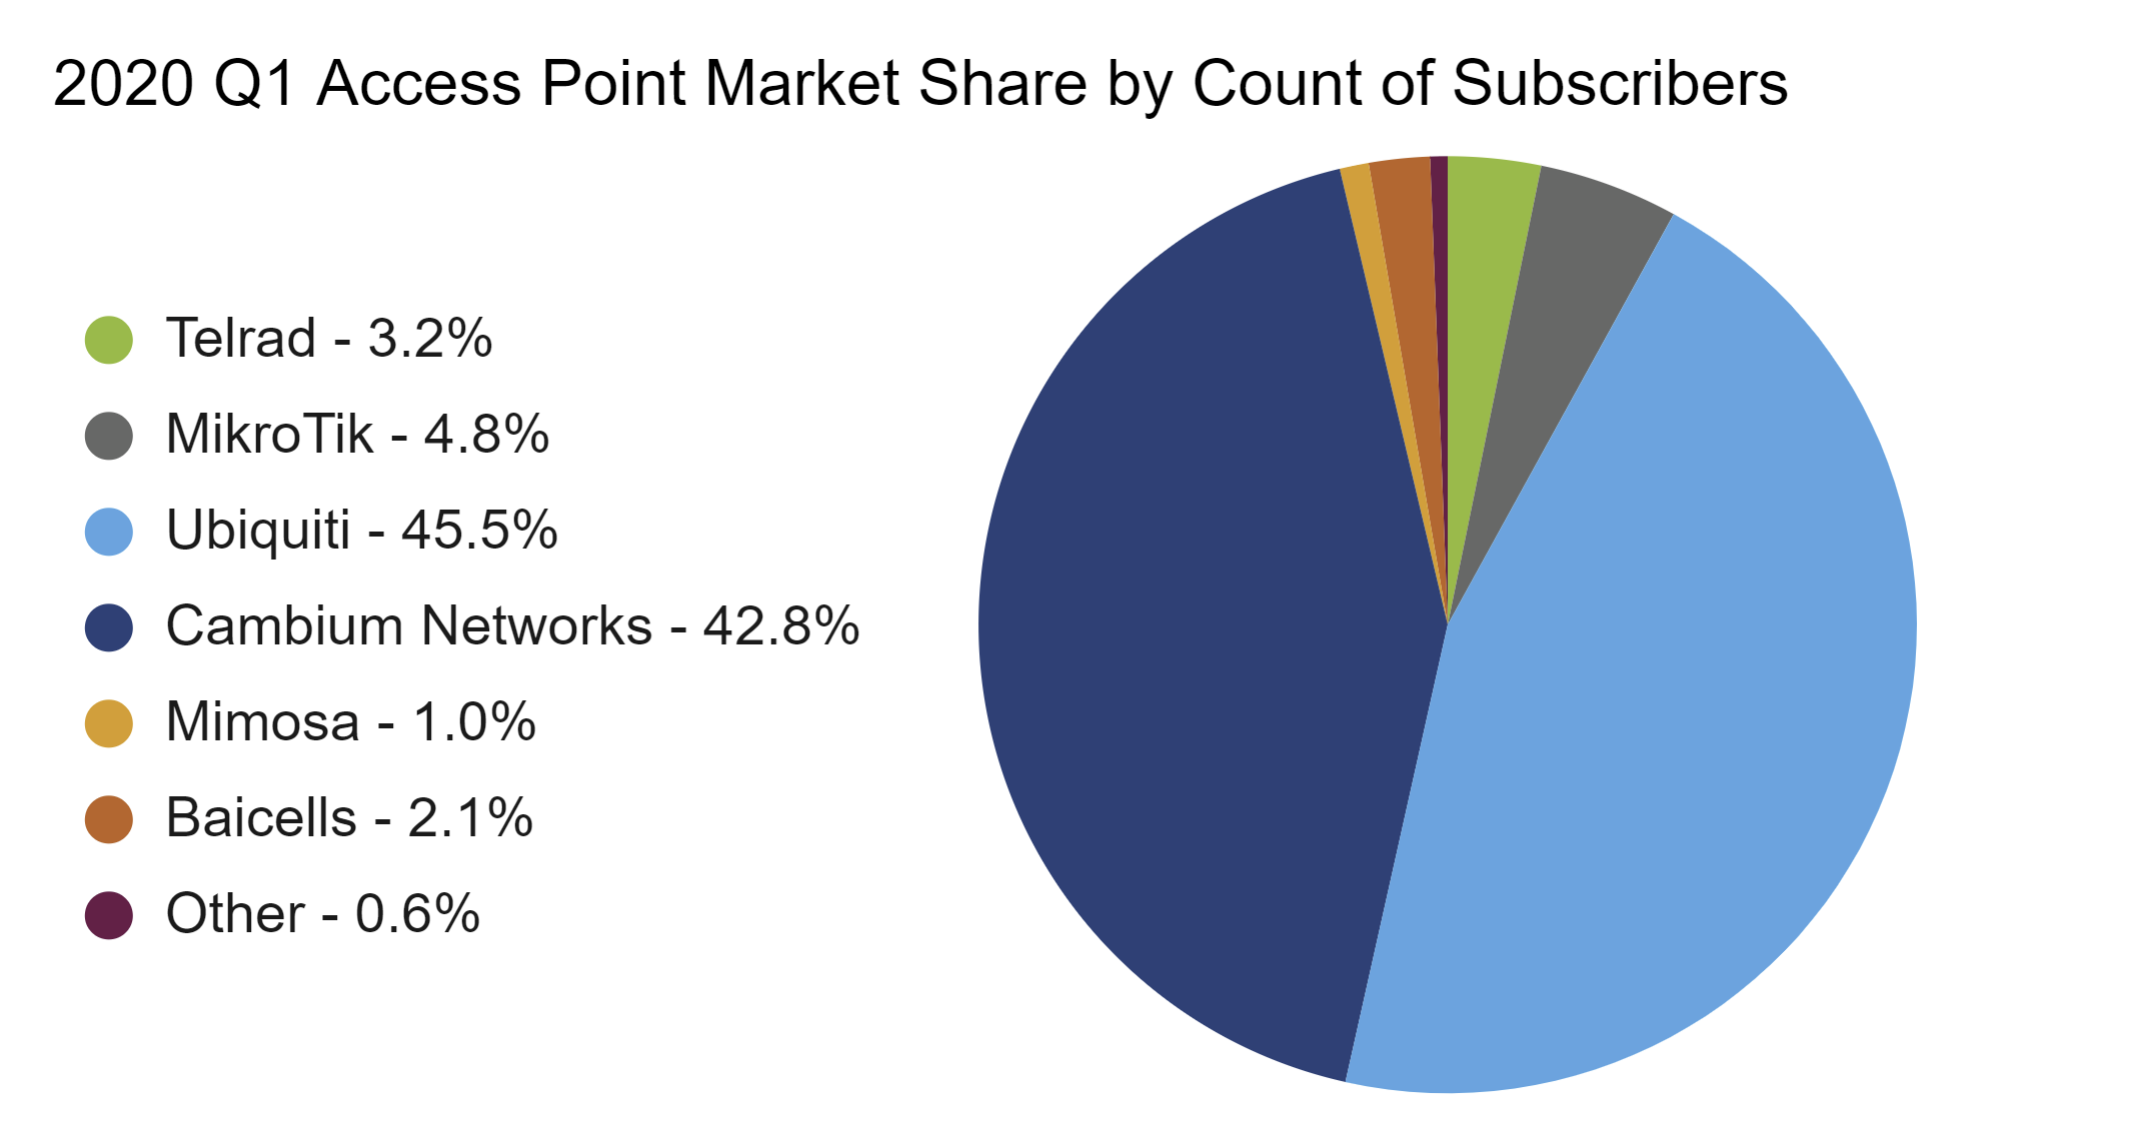 Access Point Comparison - 2020 Q1 AP Market Share by Count of Subs